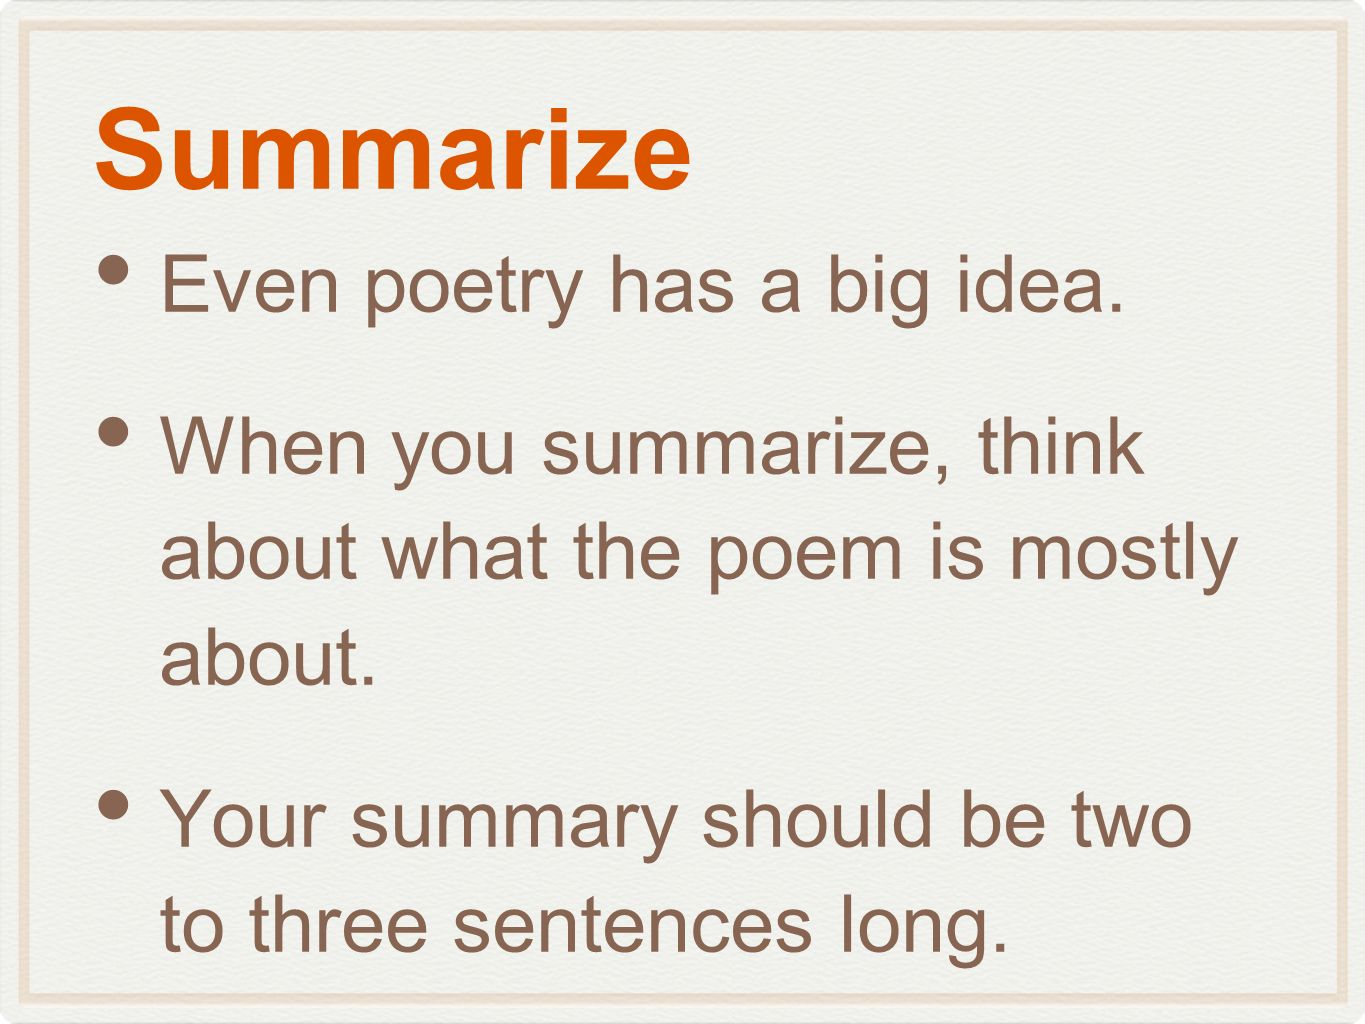 Summarize Even poetry has a big idea. When you summarize, think about what the poem is mostly about. Your summary should be two to three sentences lon